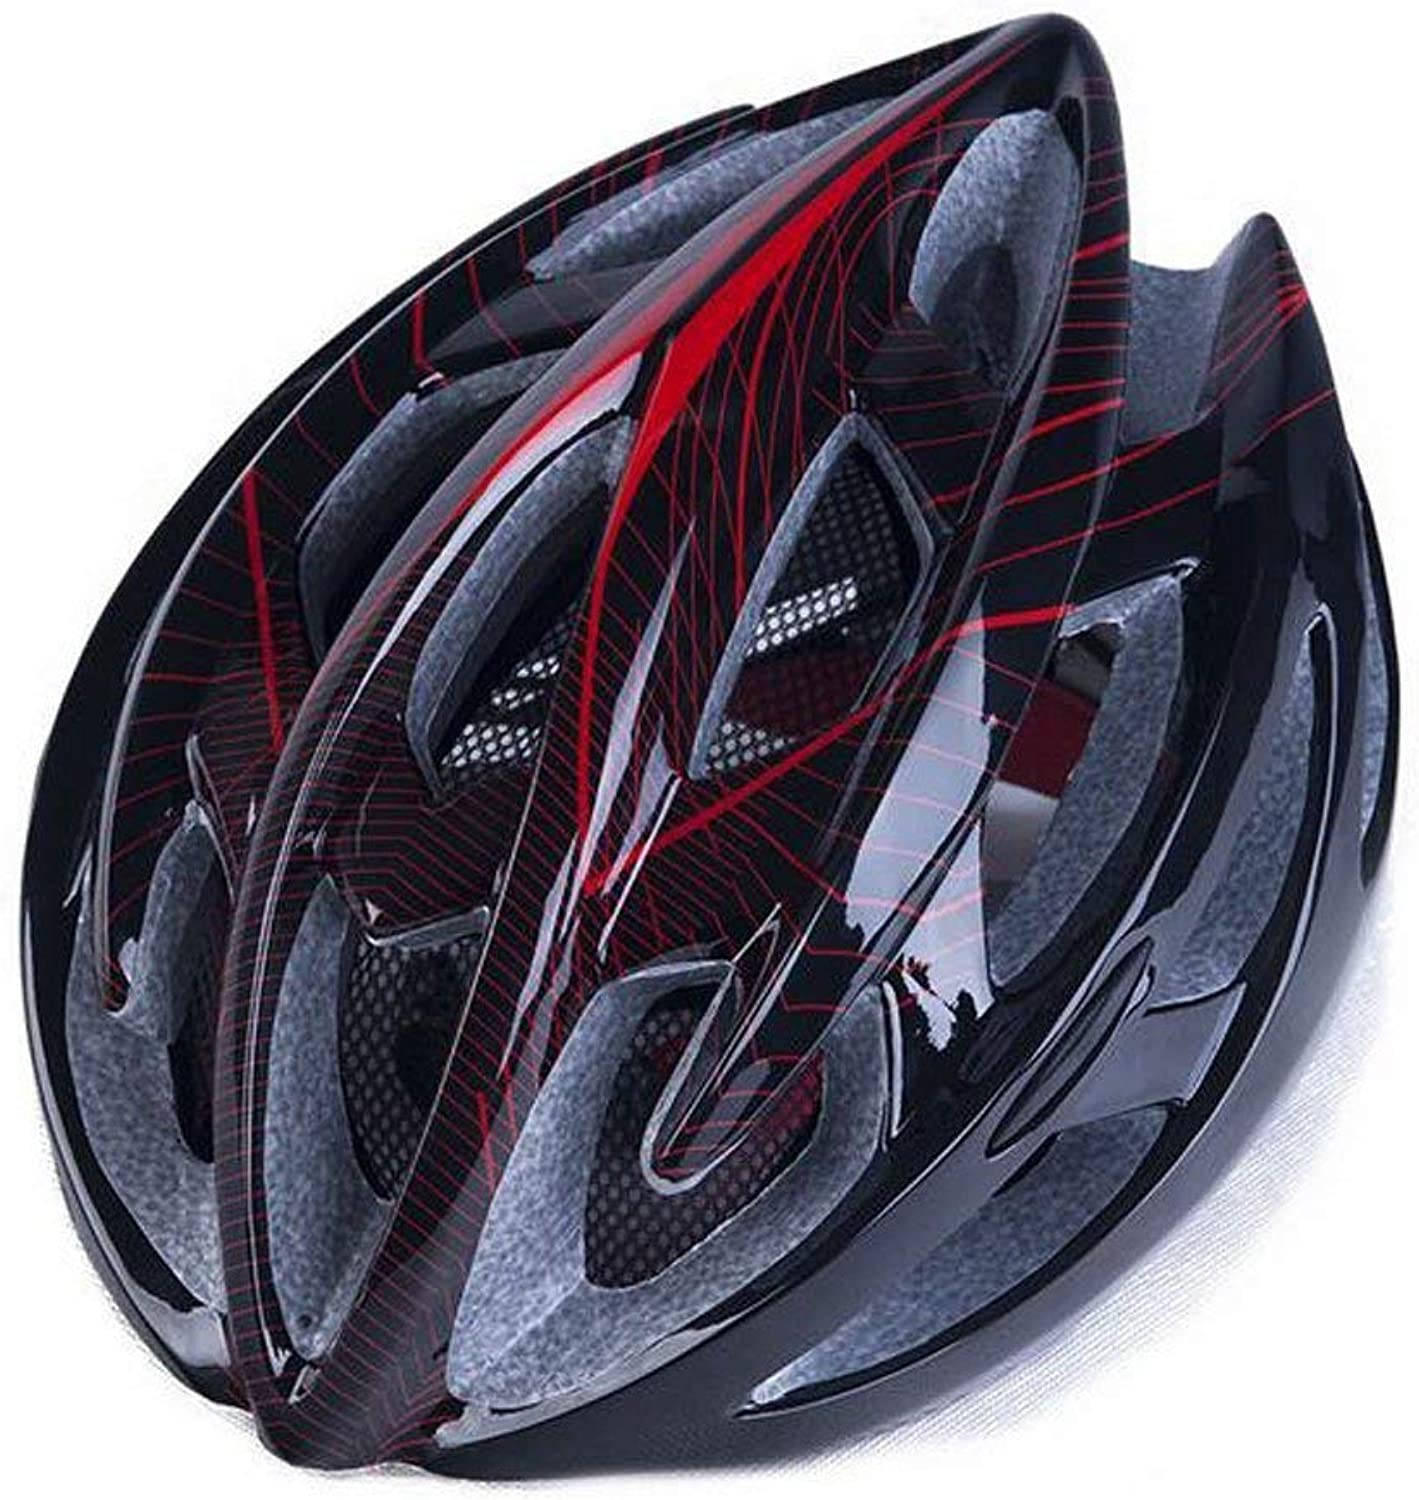 Oli Casque Helmet Outdoor Bicycle Helmet Eps Lightweight Comfortable Fashionable Ventilated Safety Four Seasons Helmet Neutral Suitable for Head Circumference(5763Cm)